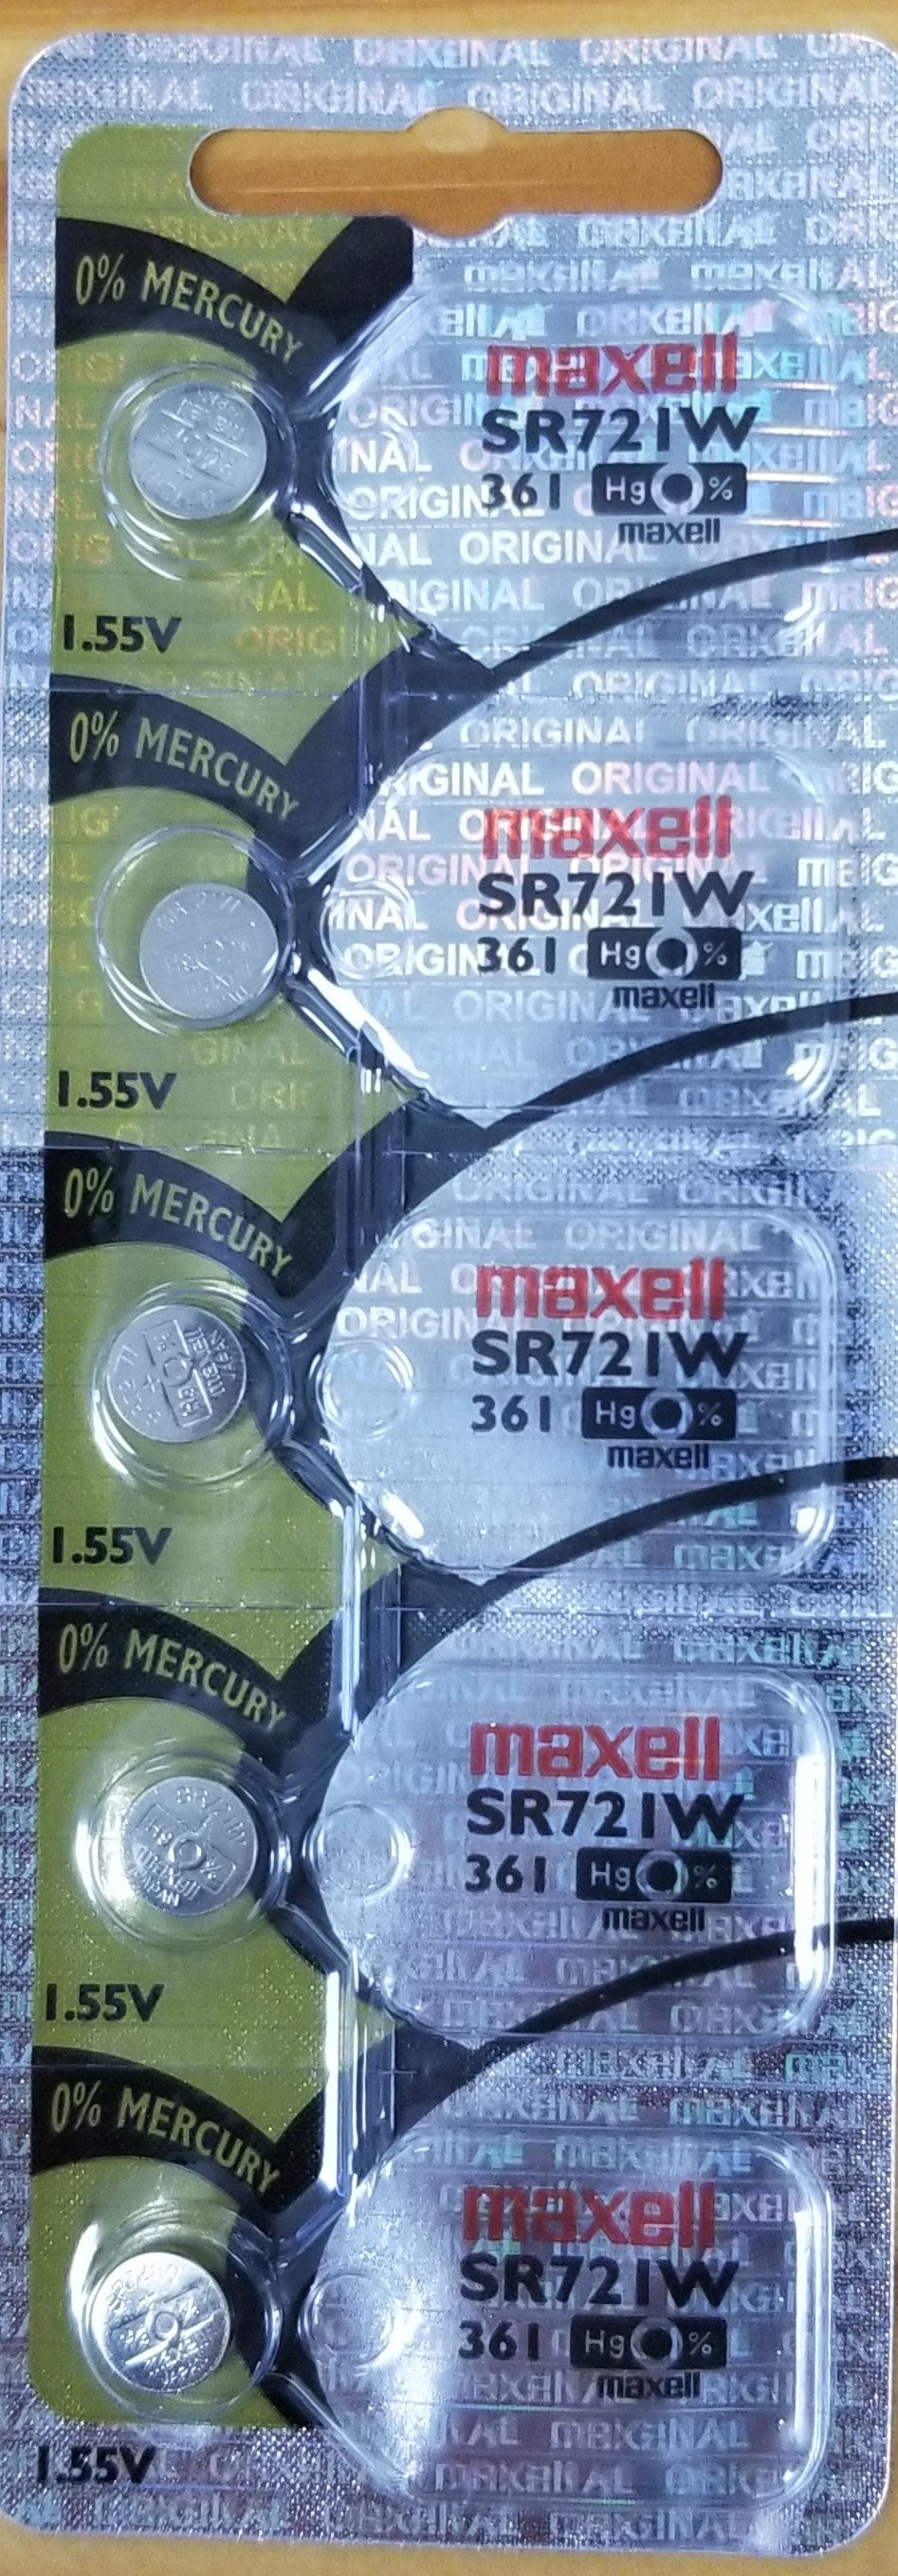 Maxell #361 SR721W 1.55v Silver Oxide Battery - Tear Strip of 5